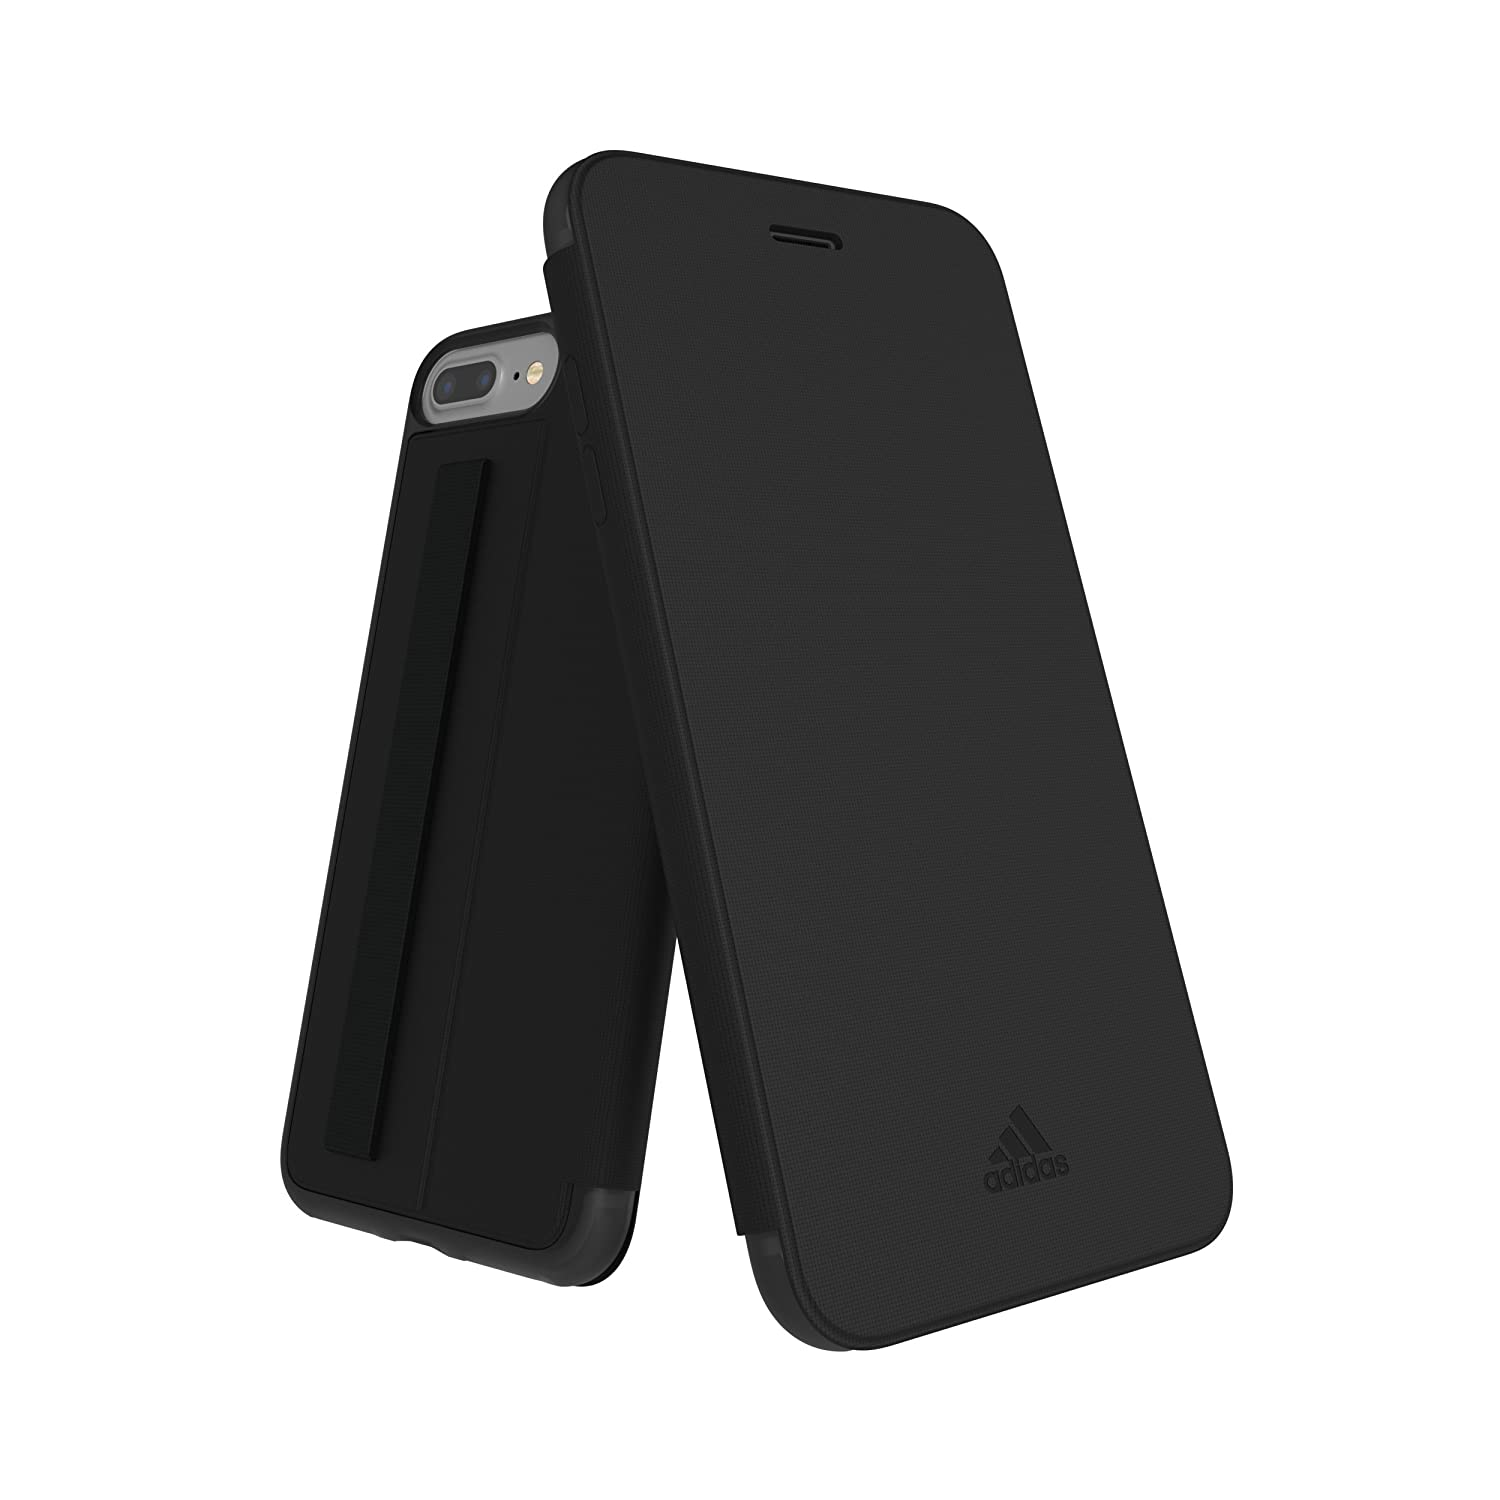 adidas Performance Folio Grip Case Funda Carcasa Portatil para Apple iPhone 7 Plus – Negro Black